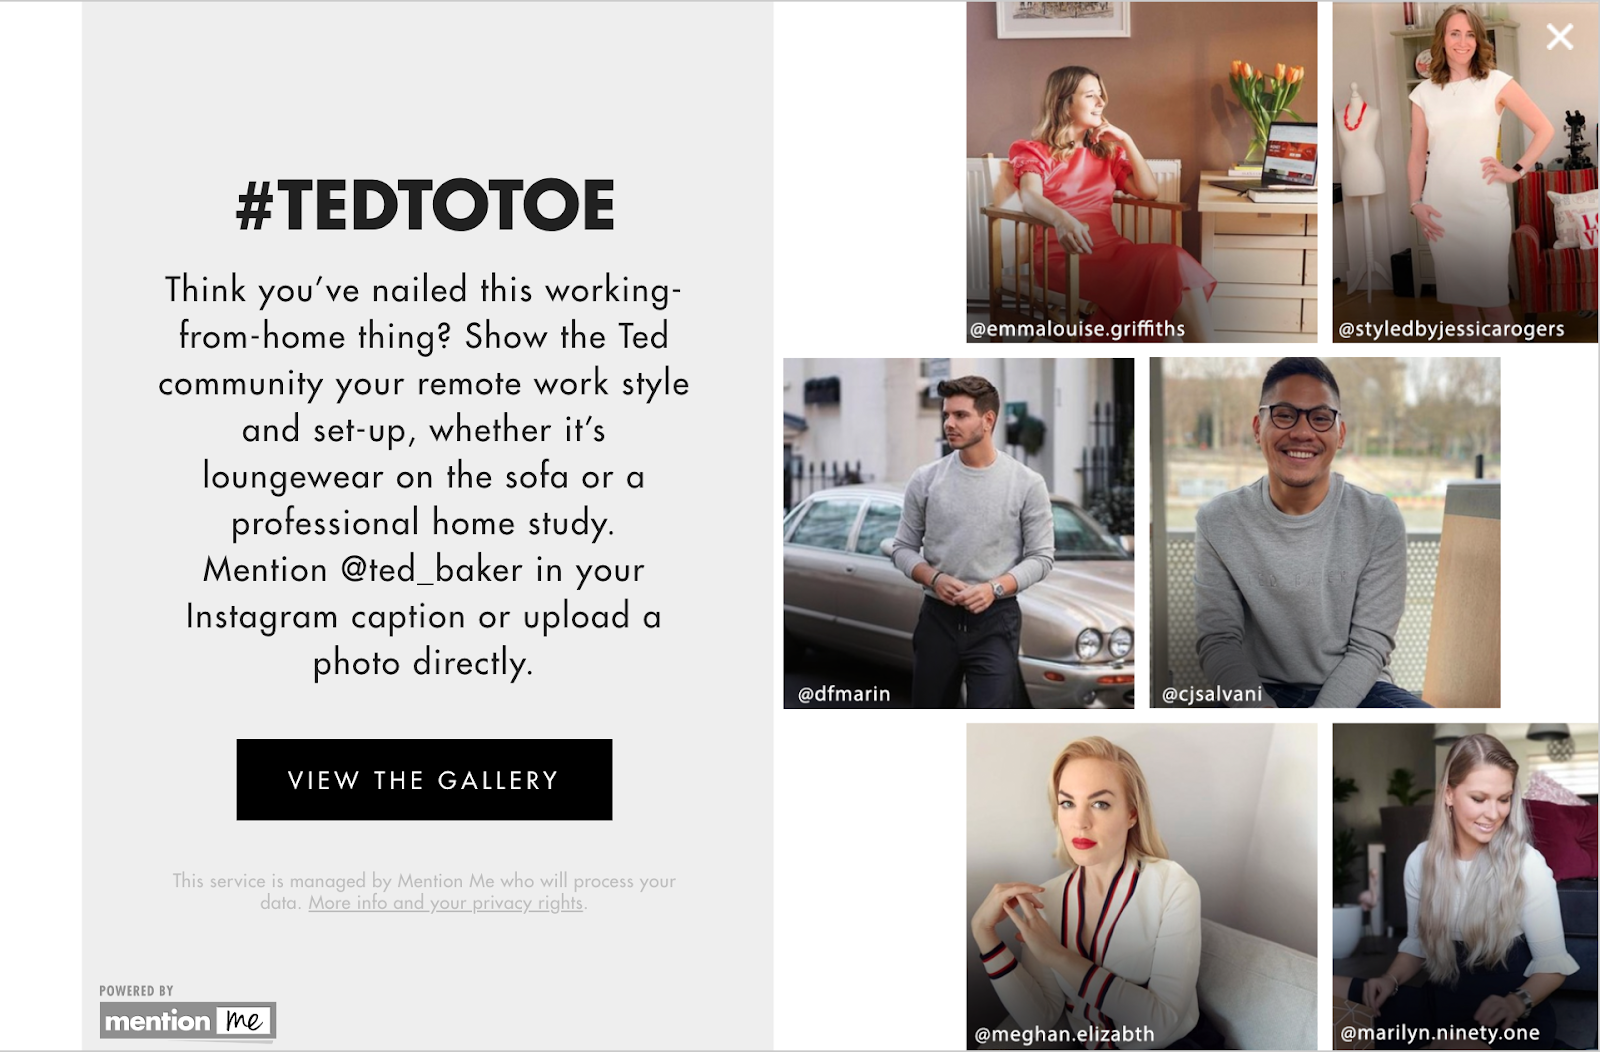 Ted Baker user-generated content message